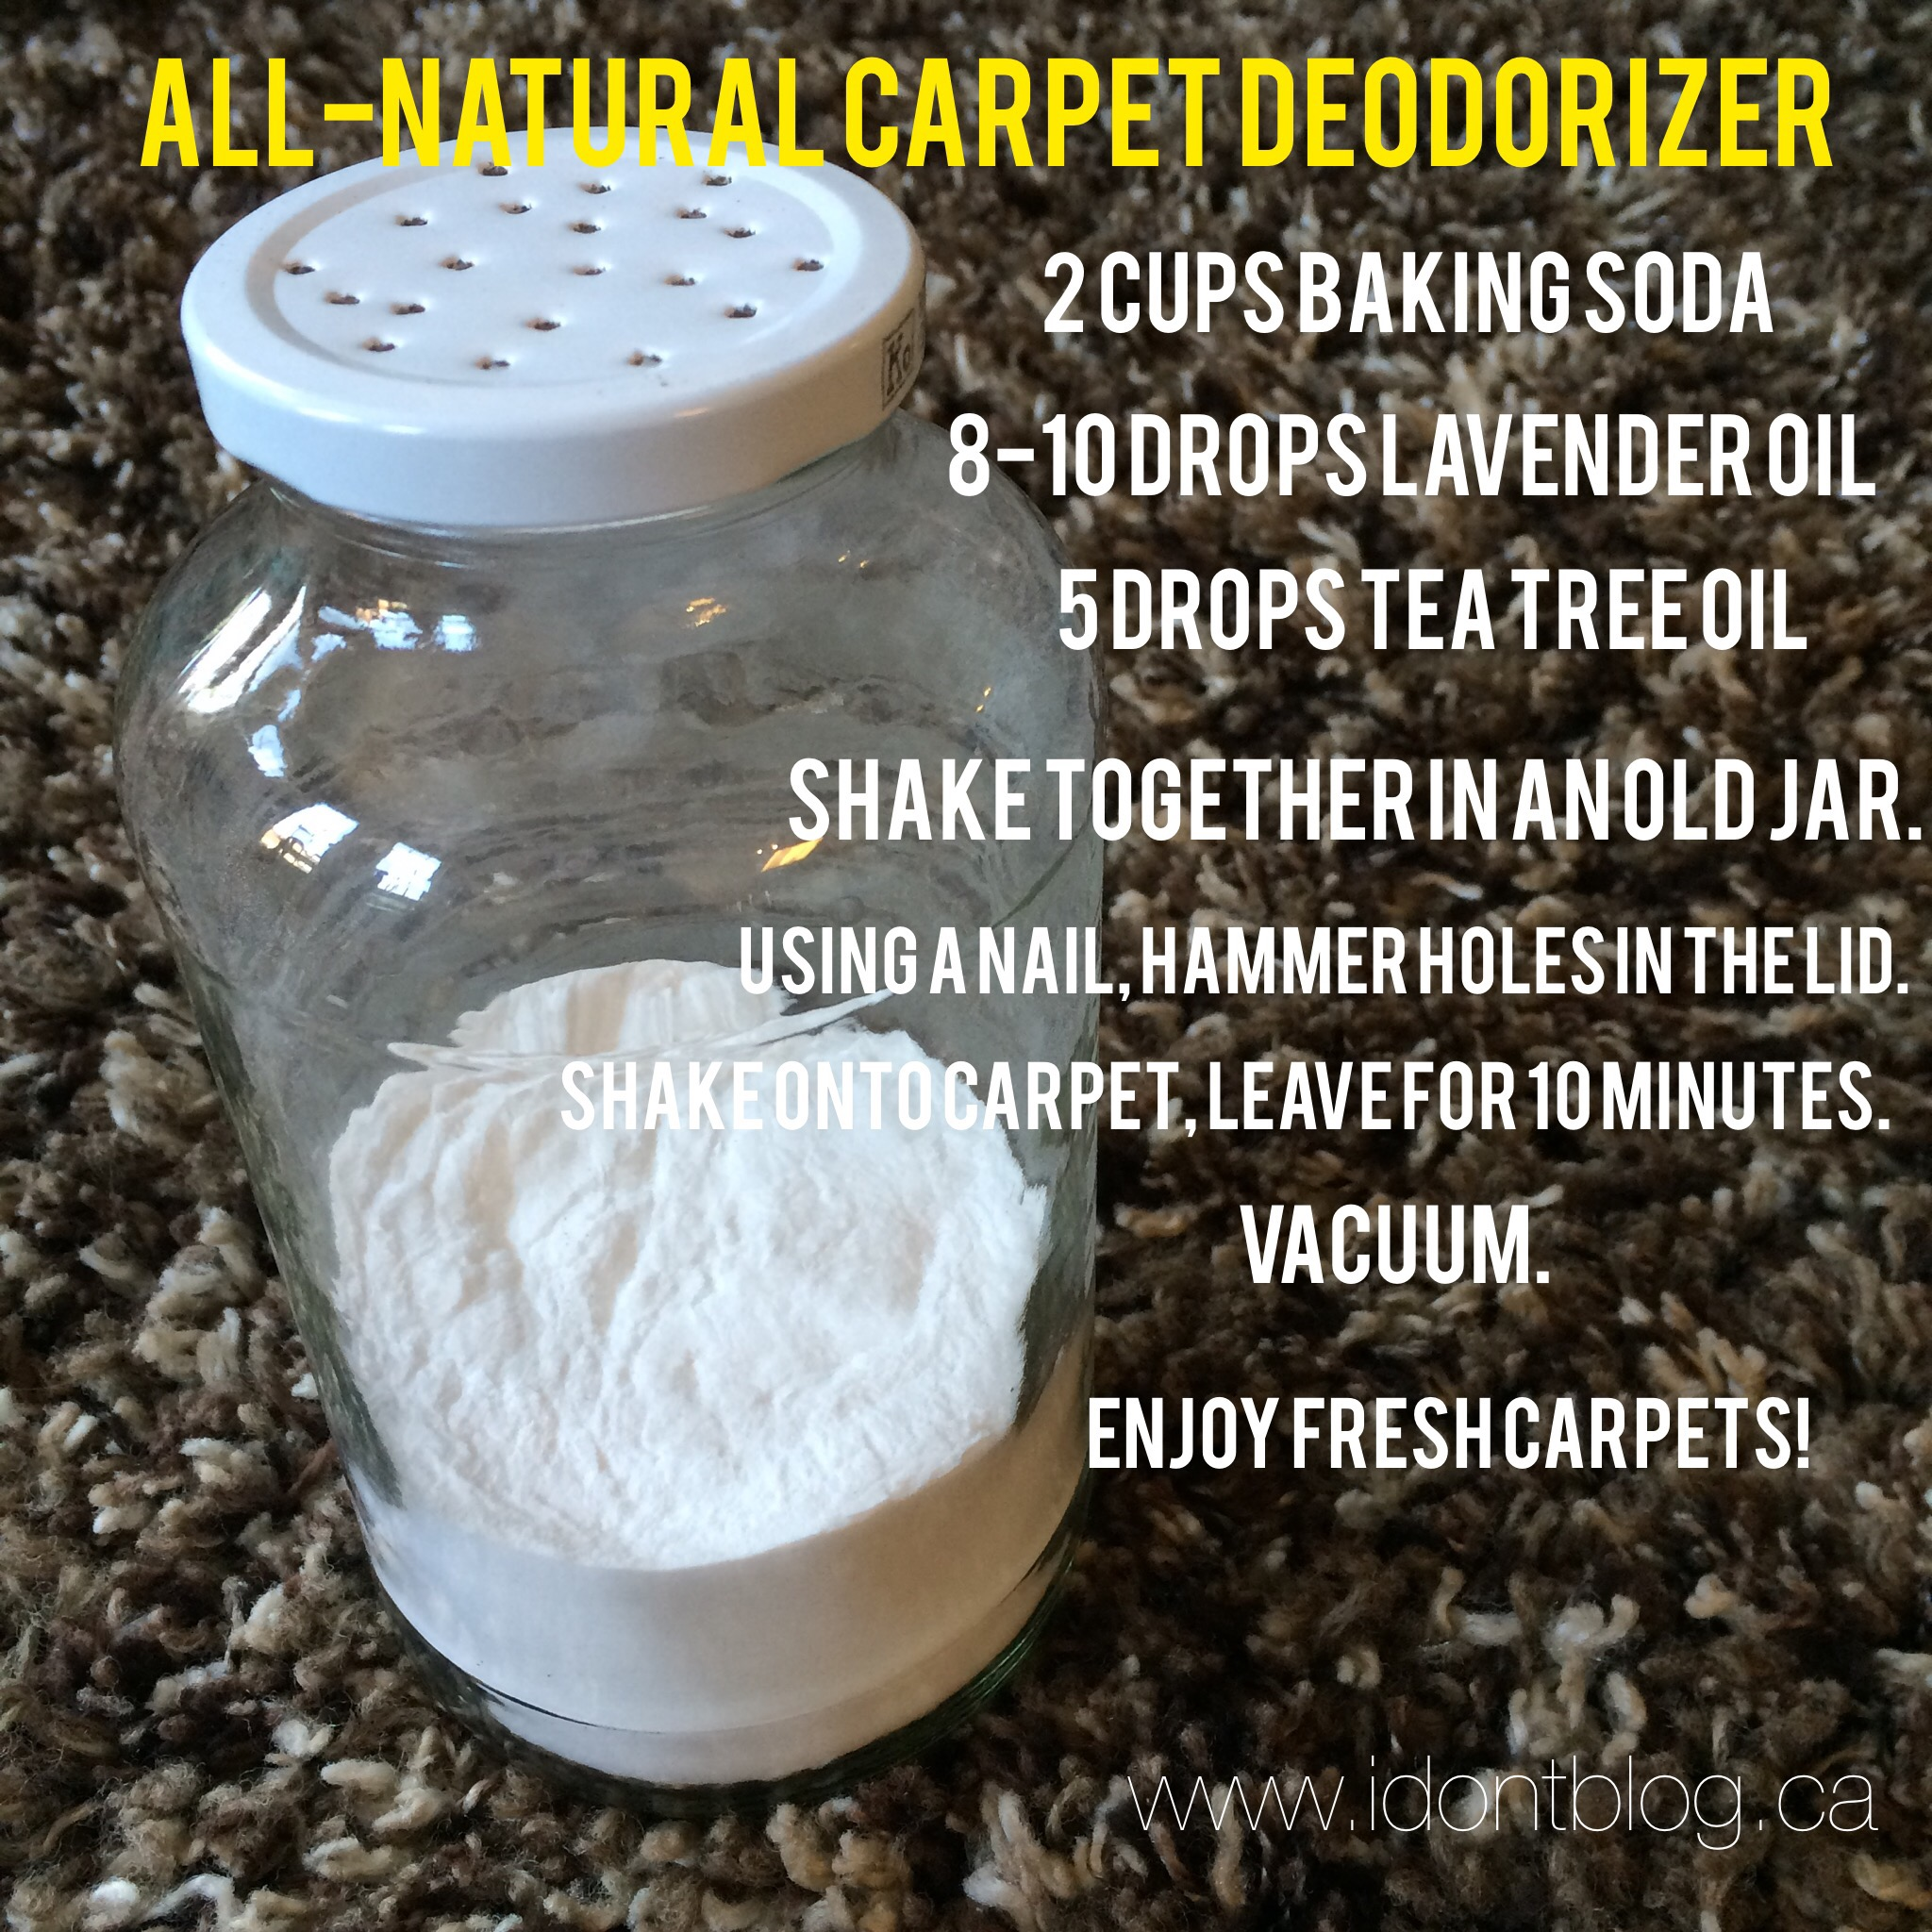 All-natural carpet deodorizer?  Yes, please!